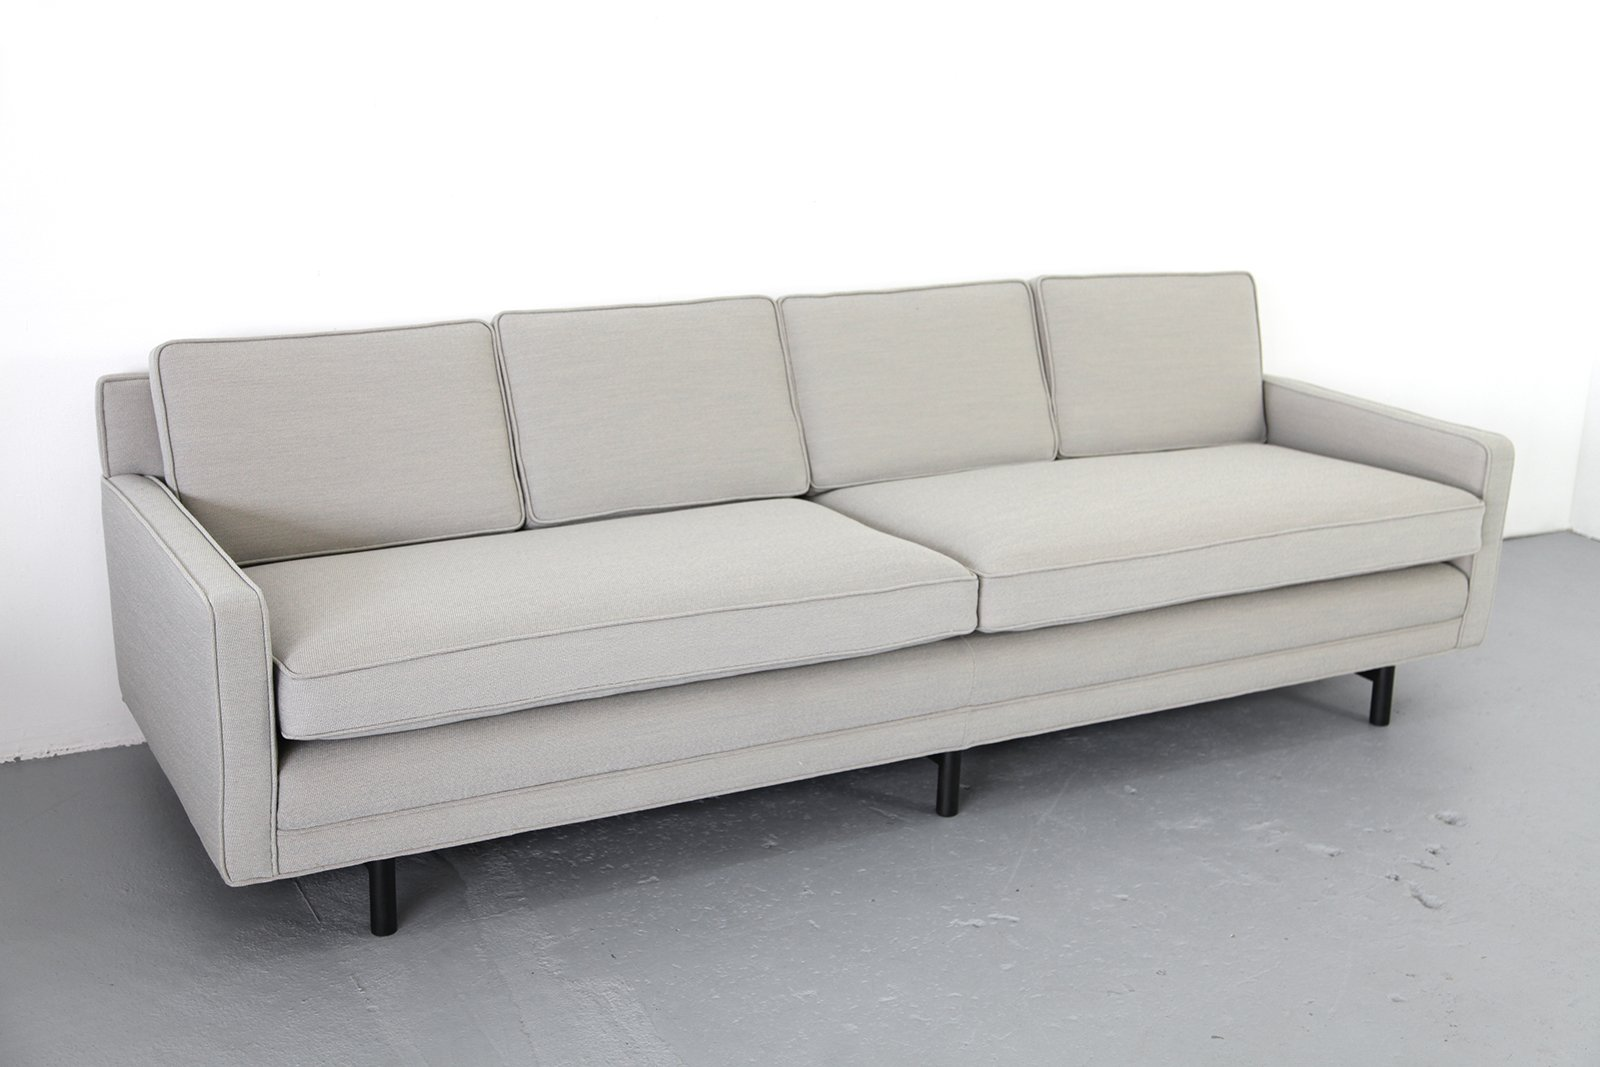 4 Seater Sofa By Paul Mccobb For Directional At Pamono